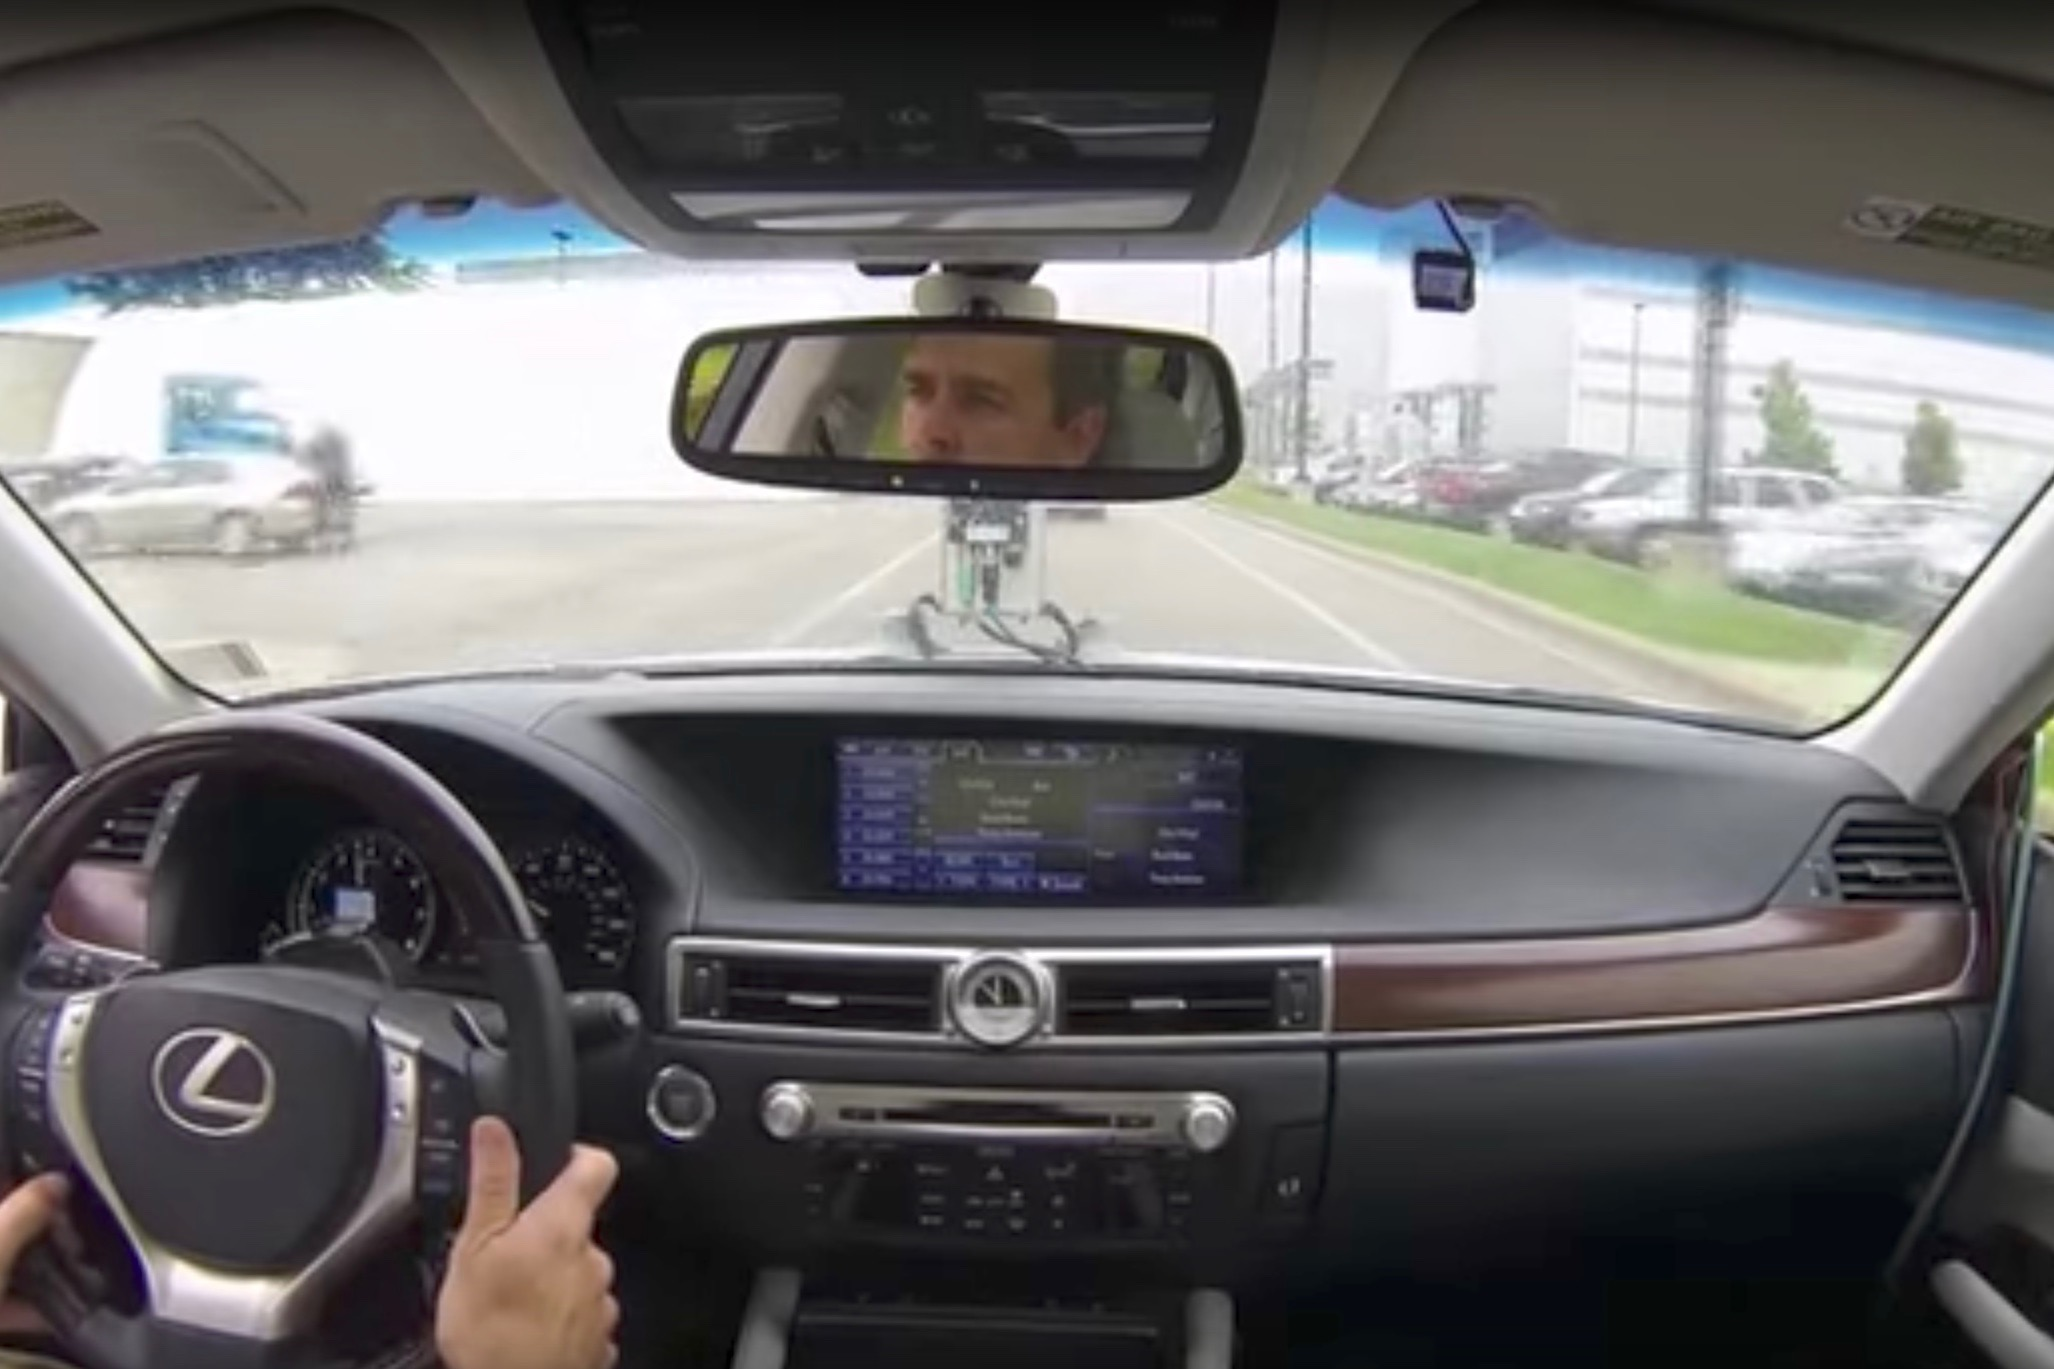 Toyota Researchers Add More Safety Tech Projects